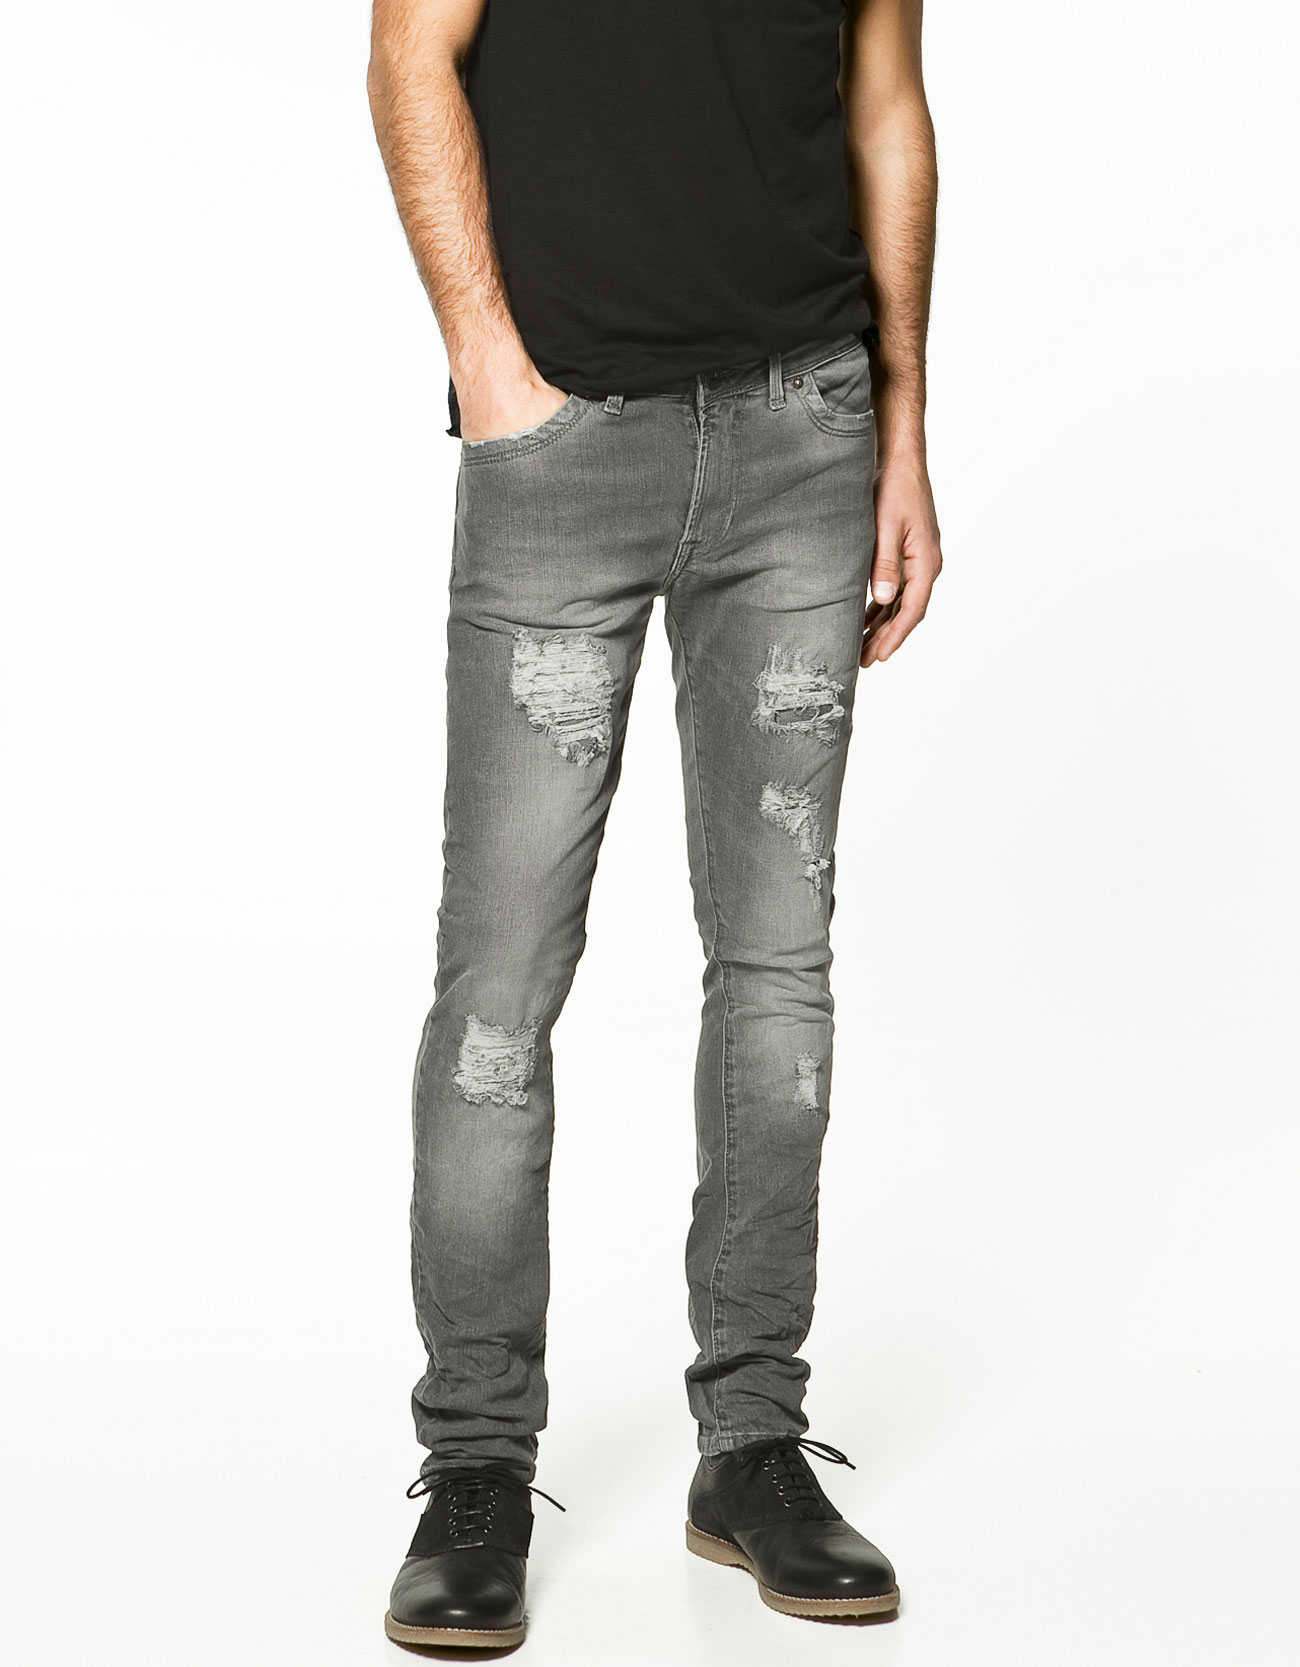 Shop our men's skinny, bootcut, and ripped jeans now at Express! We have tons of washes, fits, and styles so you can find your favorite! These jeans look great with a button-down shirt, t shirt, or sweater! Look cool and casual, whether youâ re taking care of weekend errands or relaxing with your friends.